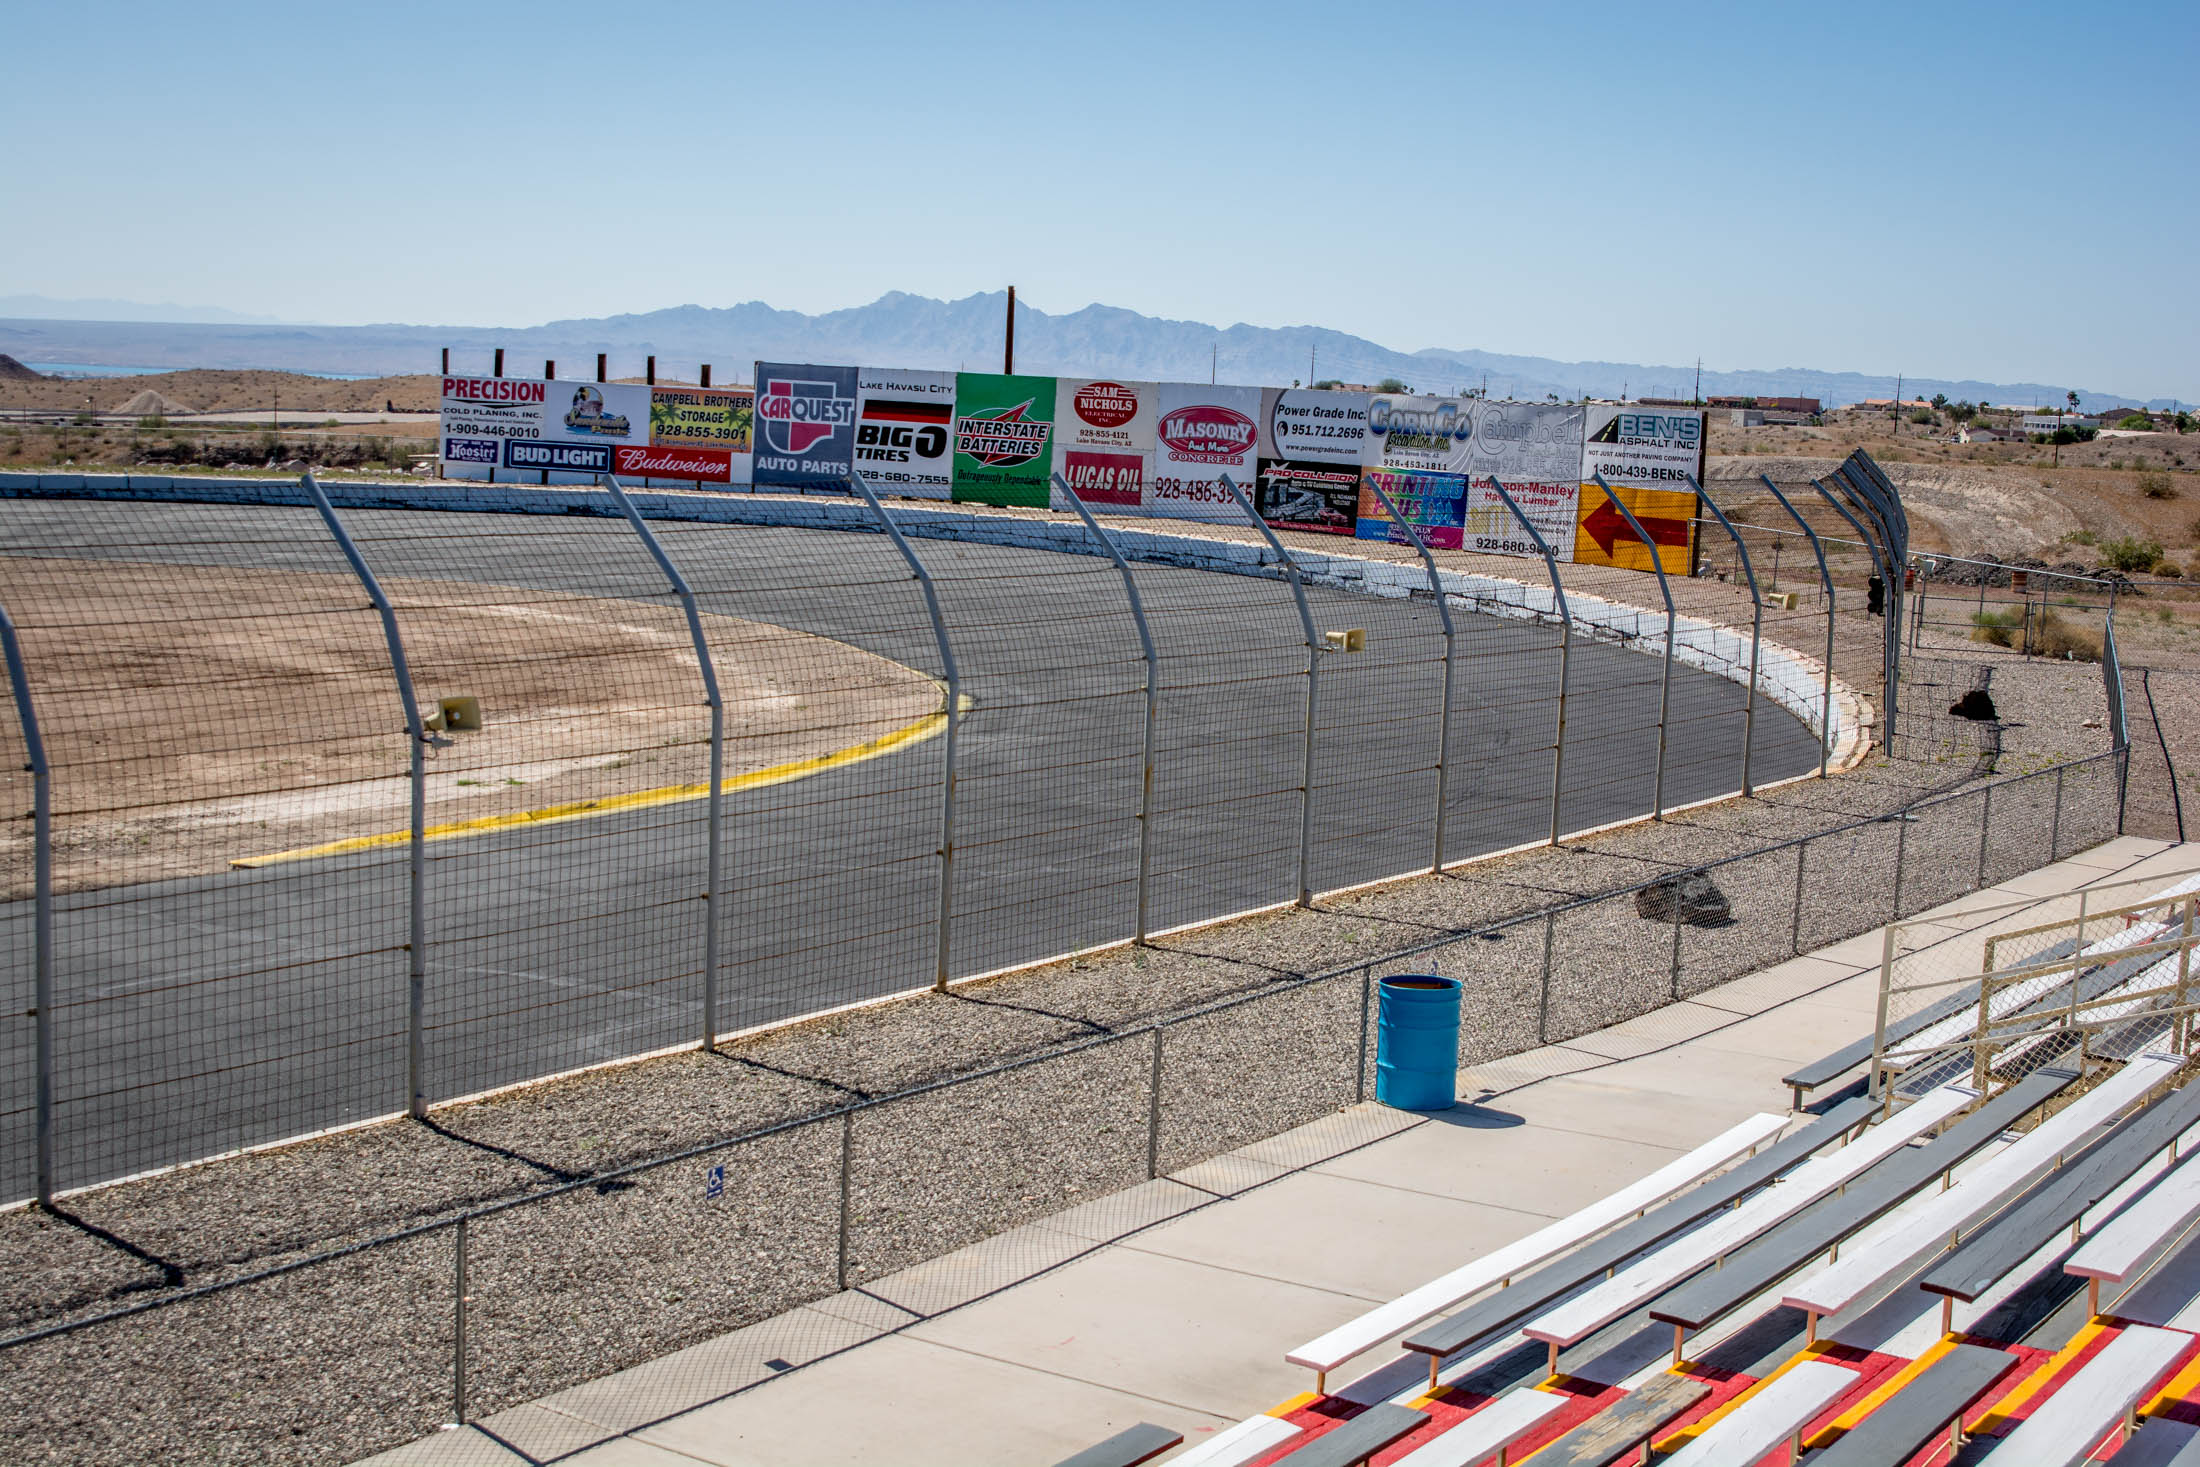 Our 1/4 mile oval is primarily a two-grooved racetrack.